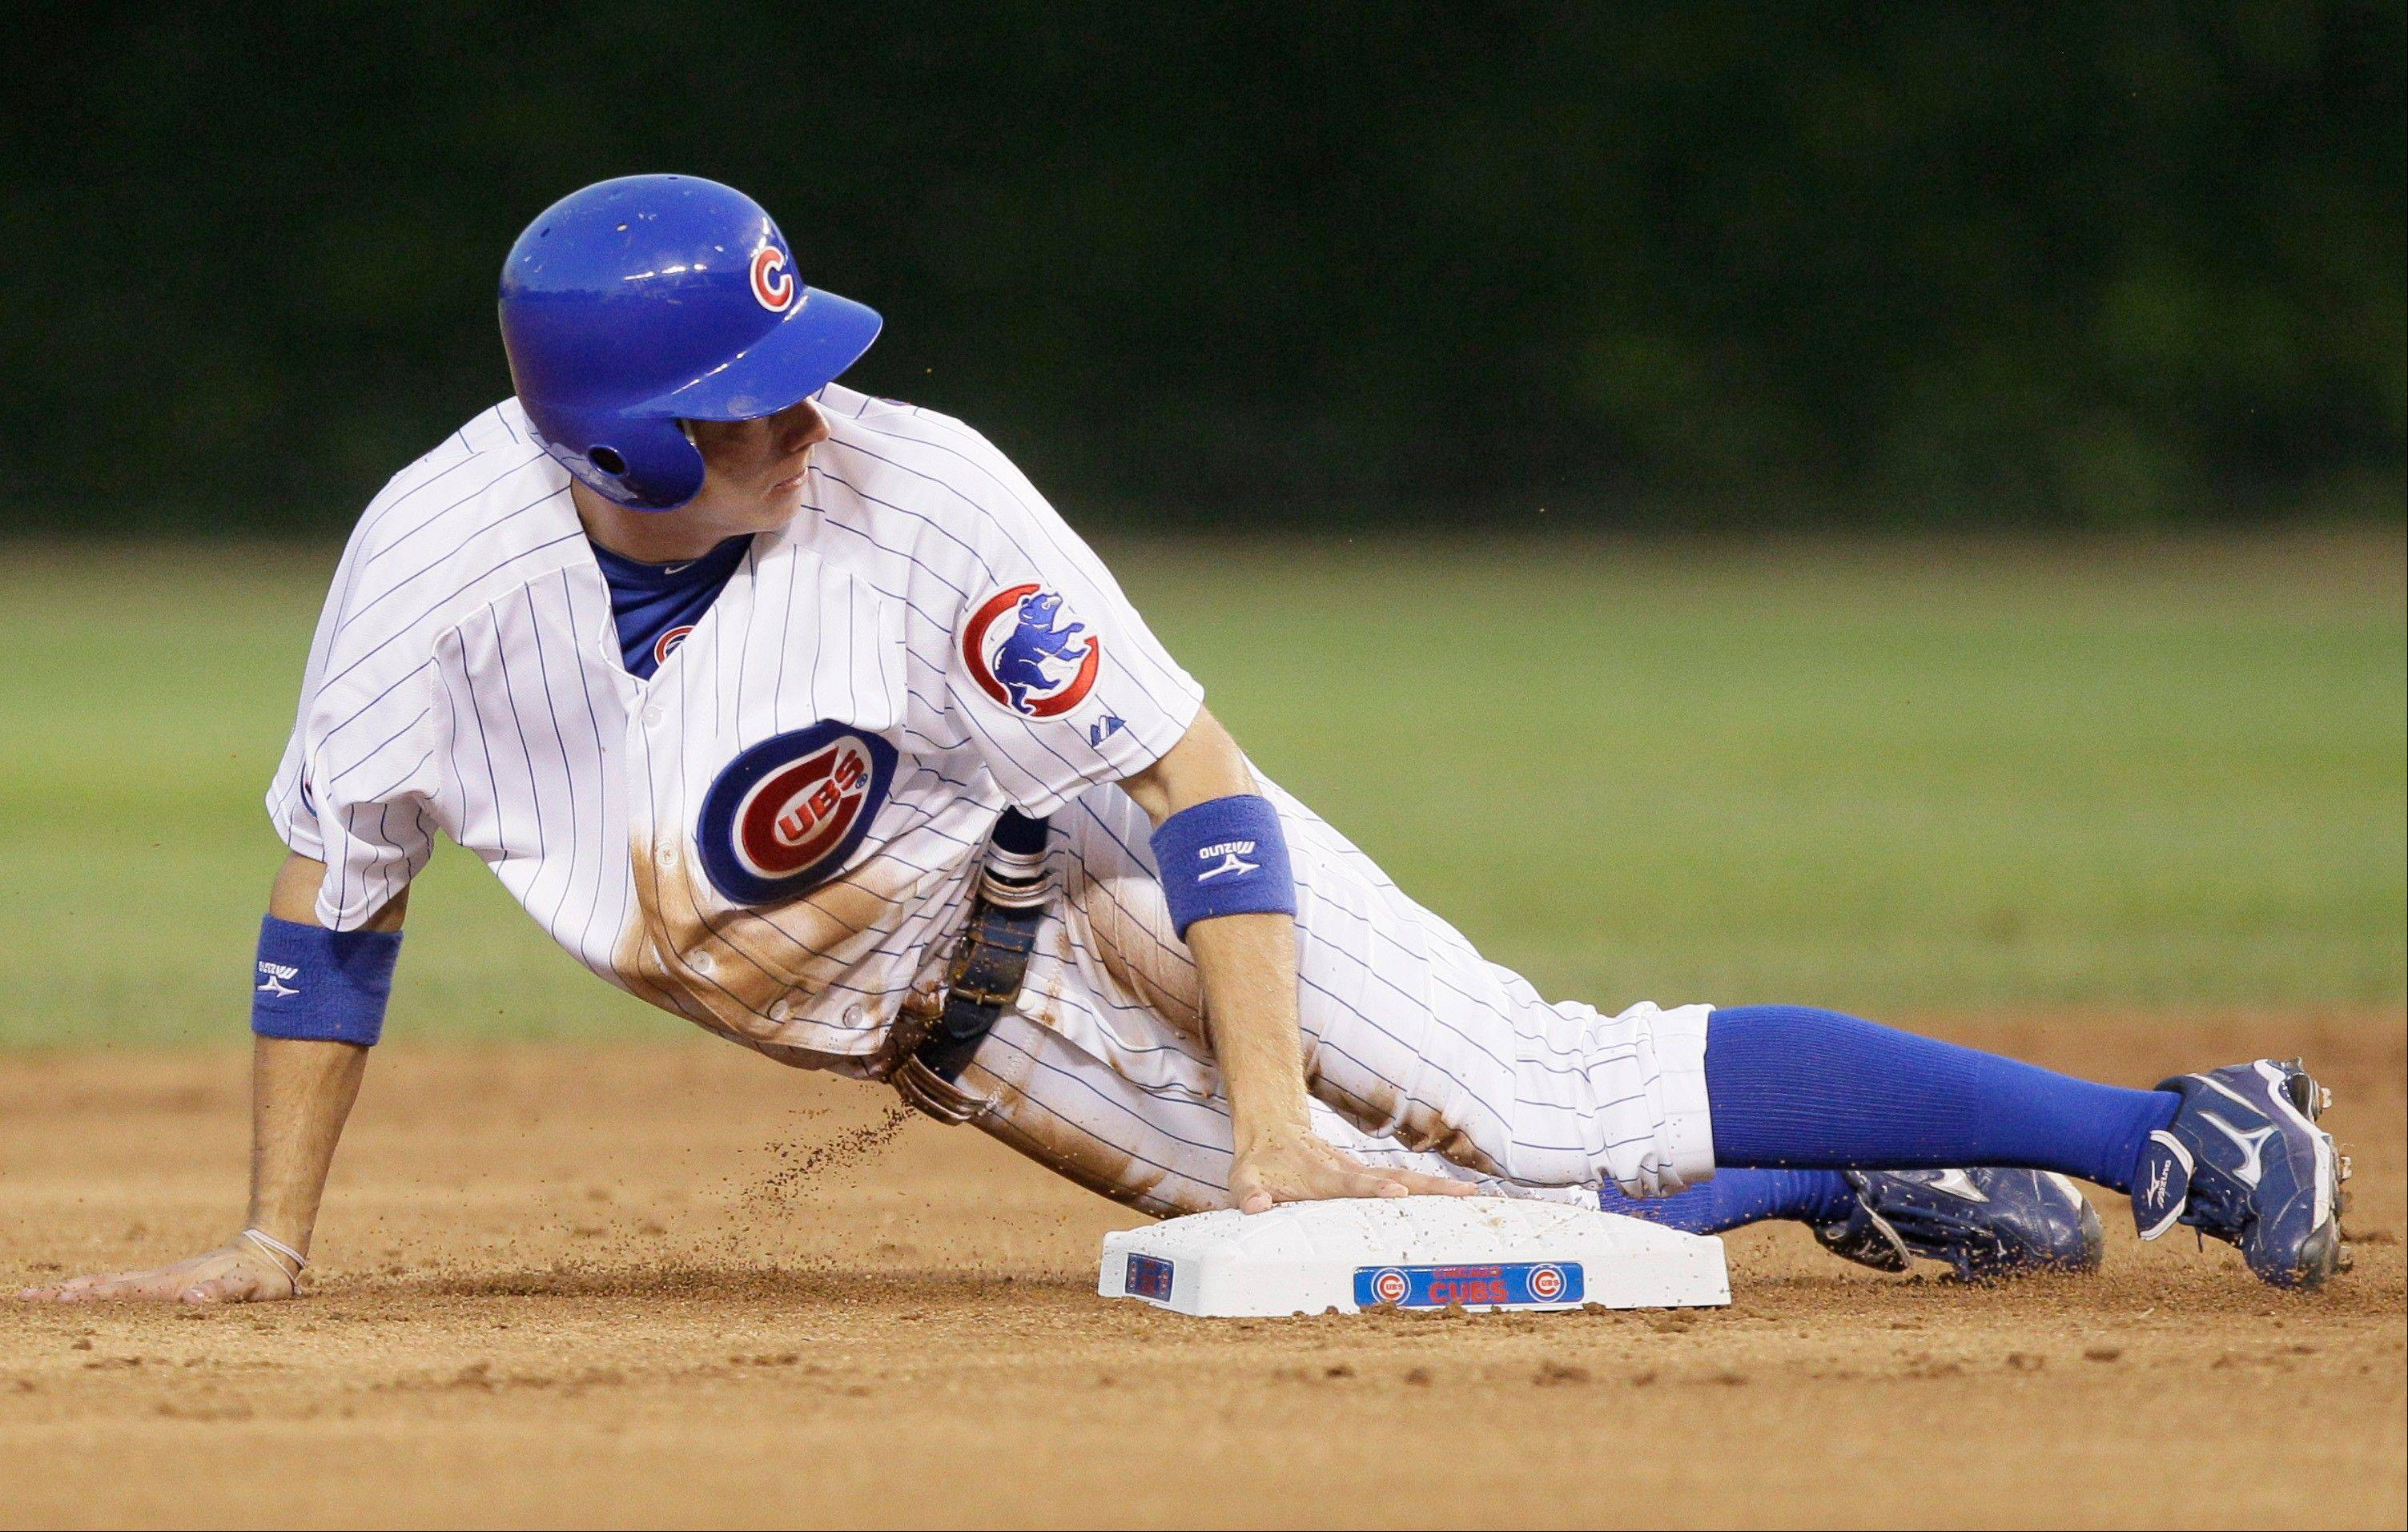 Tony Campana will have a future in the majors, Cubs manager Mike Quade believes, if he can get stronger and drive the ball so the outfielders have to respect his swing.